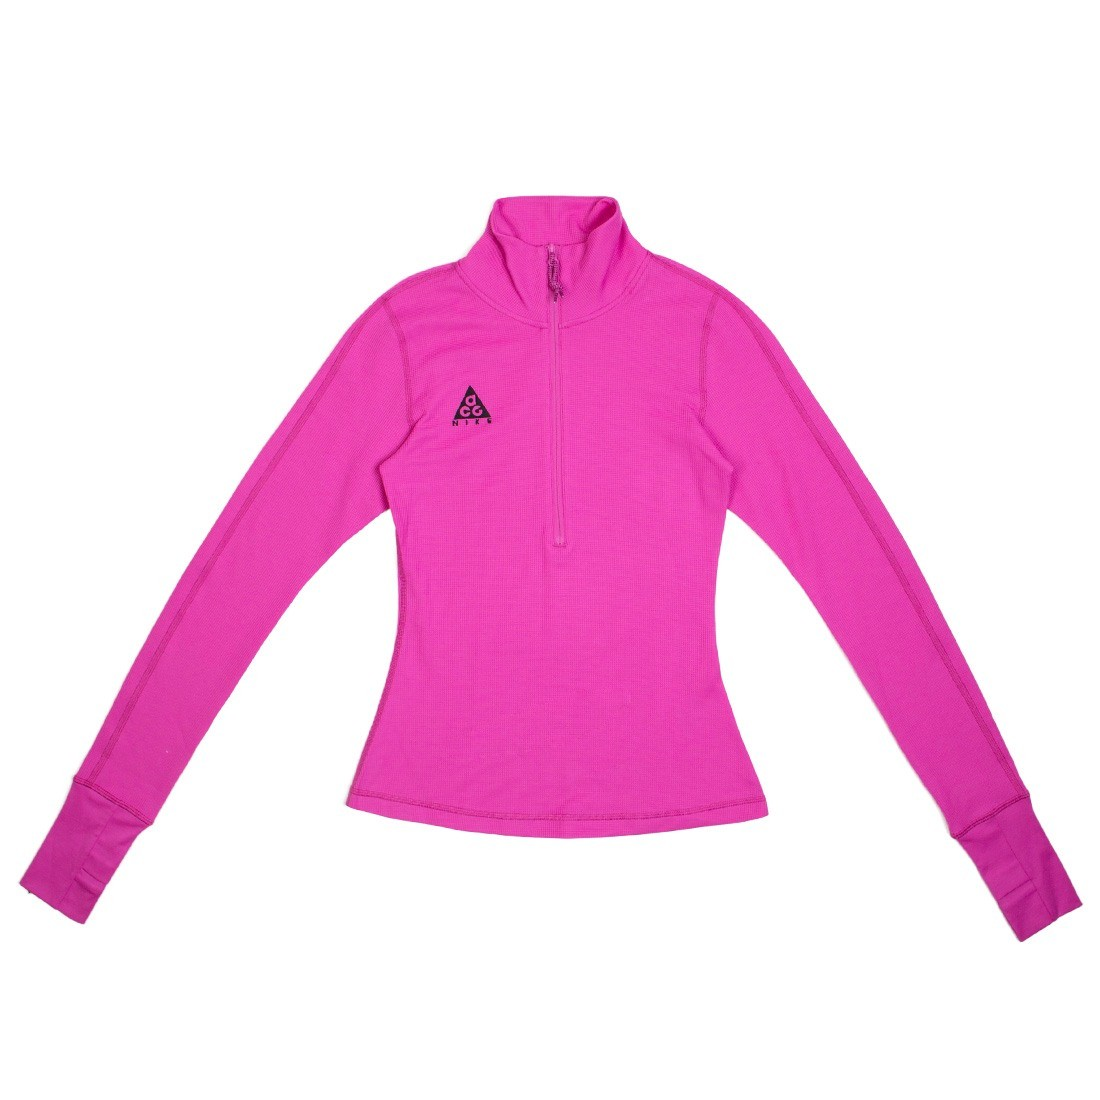 Nike Women Nrg Acg Thermal Long Sleeves Tee (active fuchsia / black)